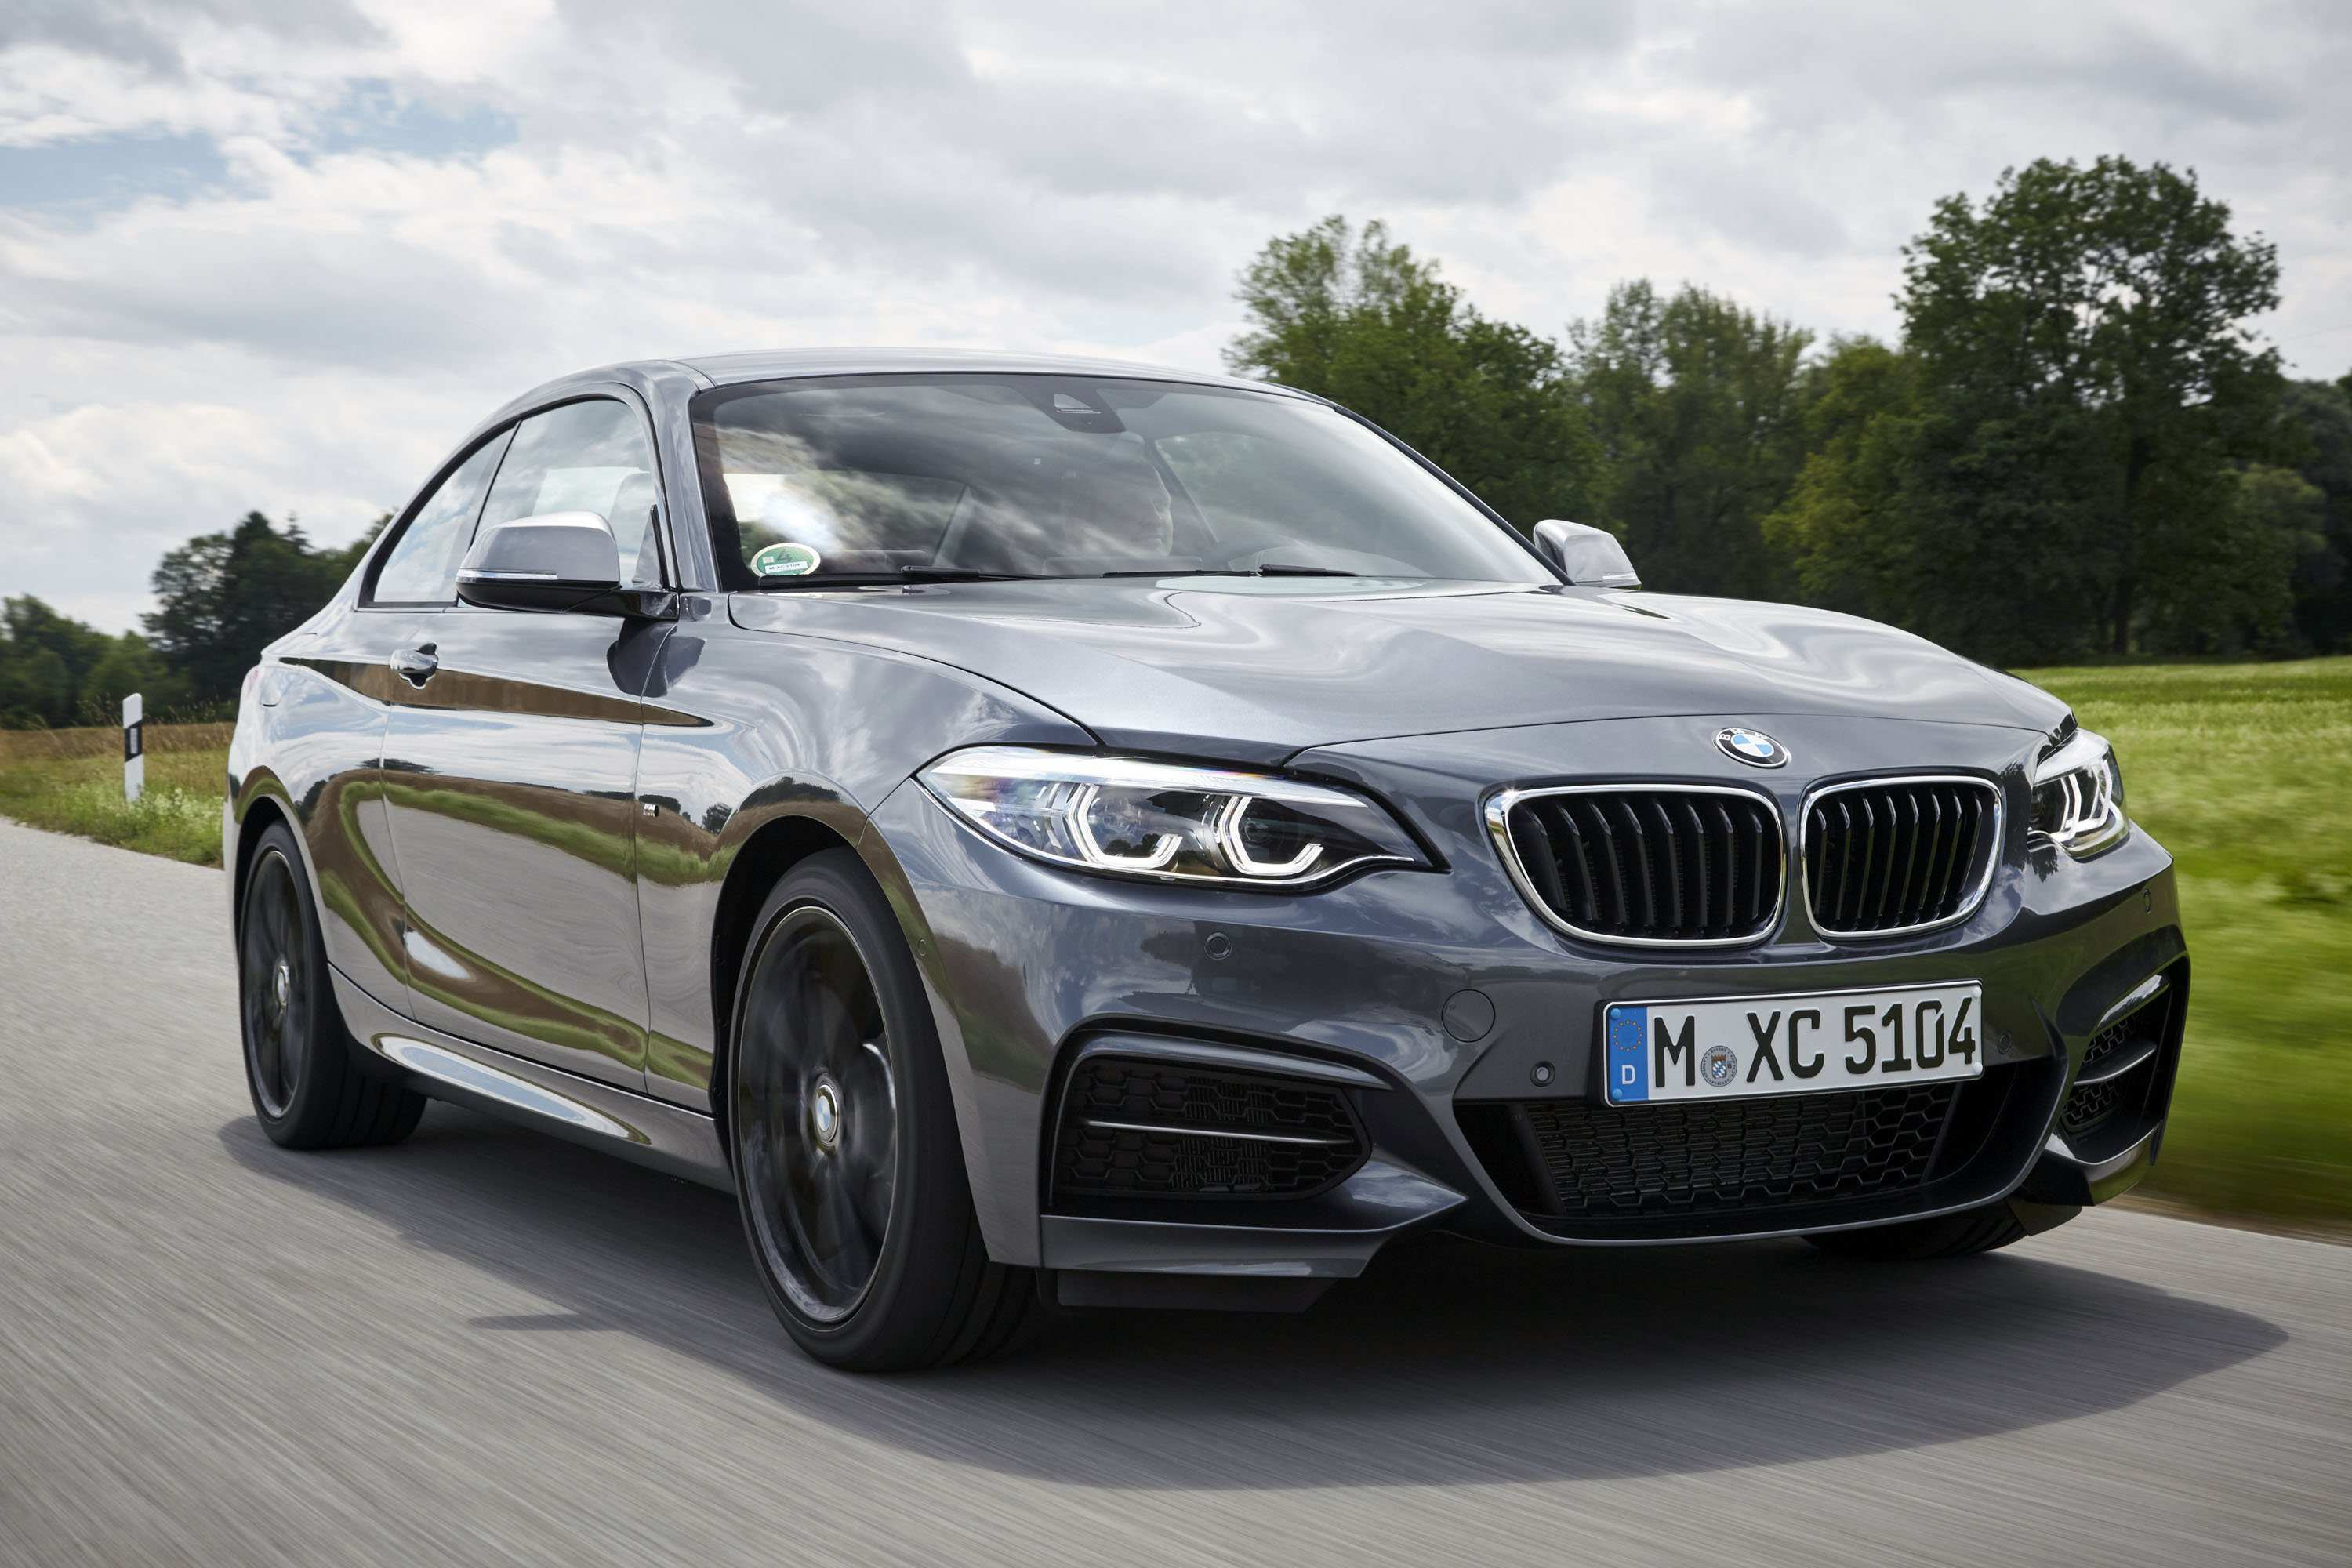 34 All New 2019 Bmw 240I History by 2019 Bmw 240I